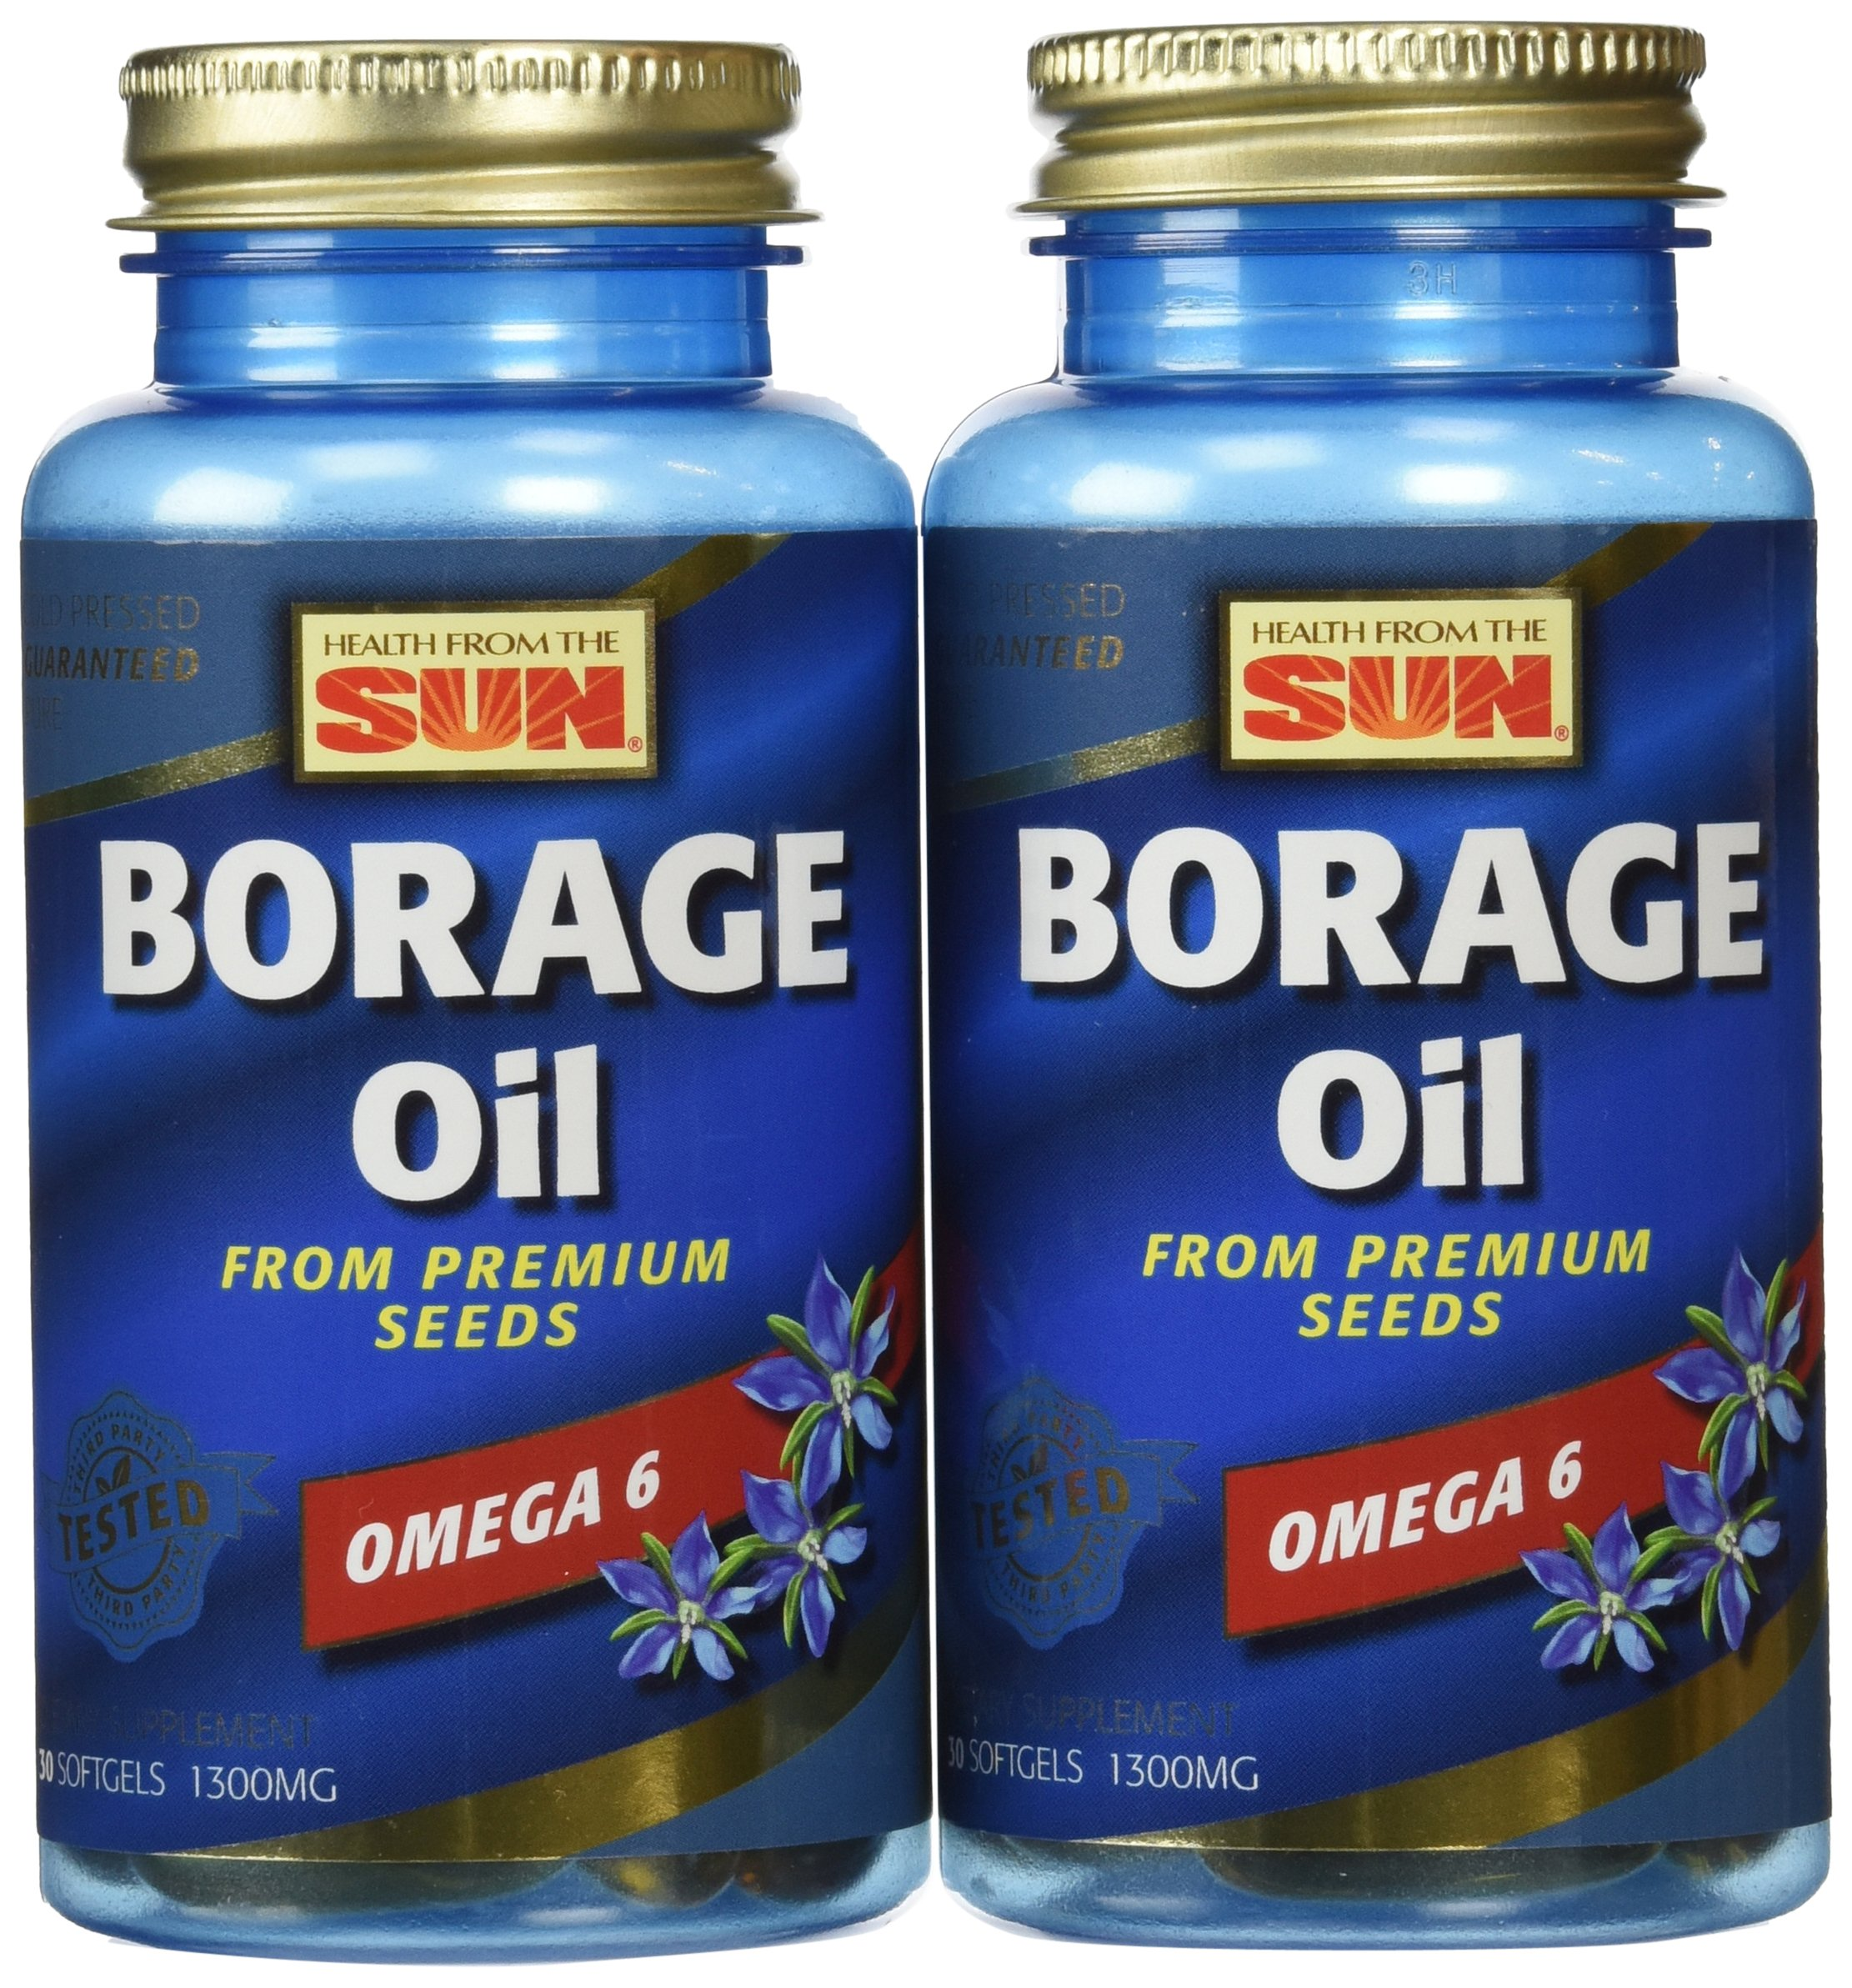 Health from the Sun Borage Oil 300 mg, 30 Capsules (Pack of 2) by Health From The Sun